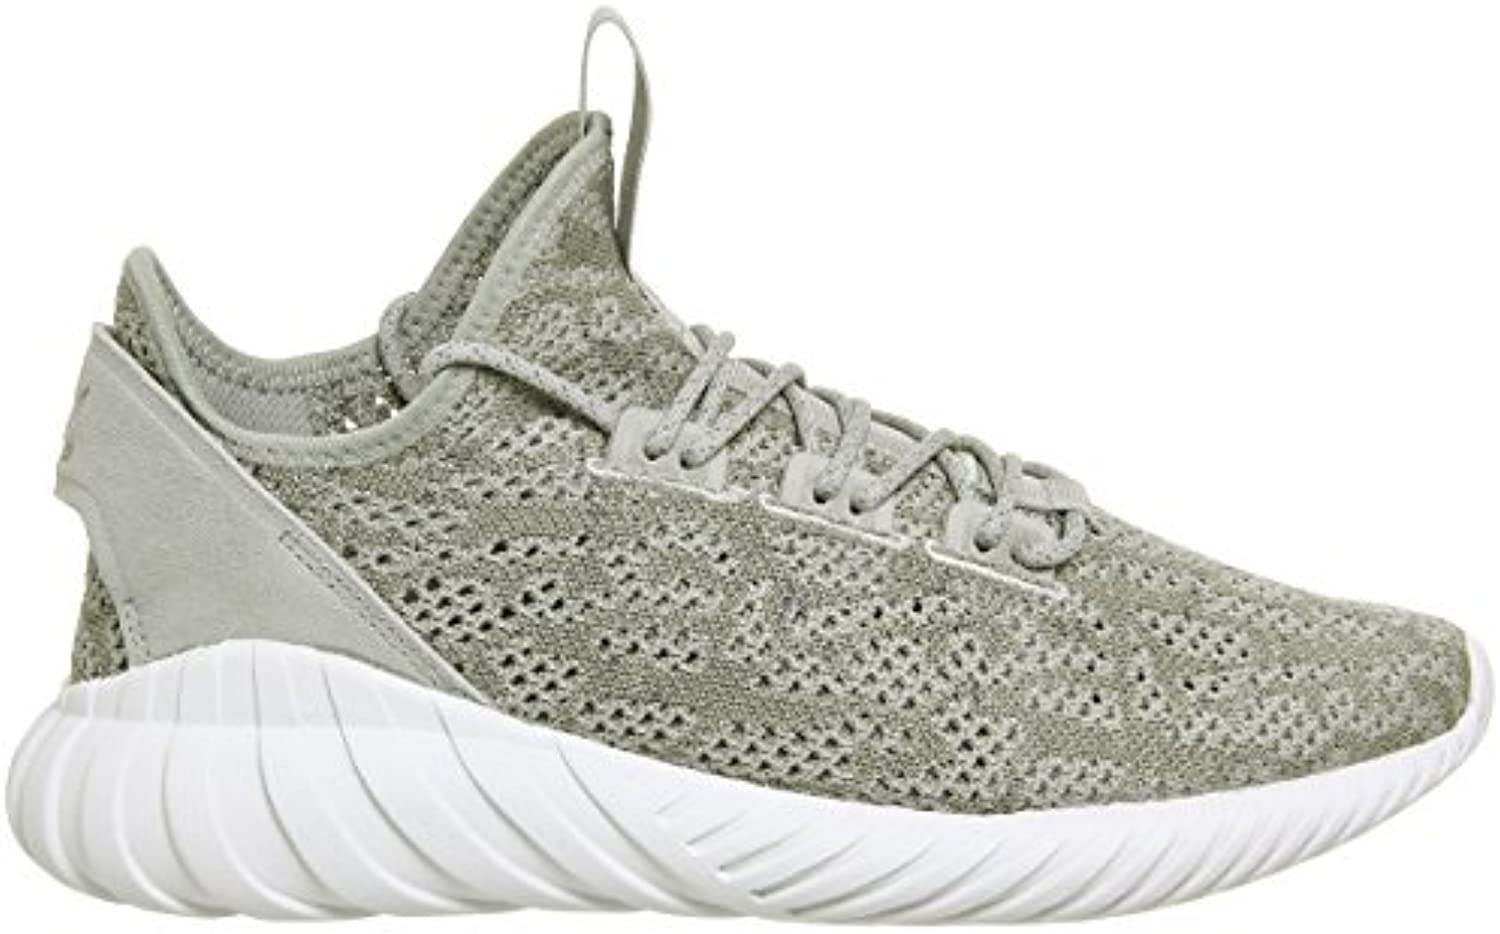 Adidas Tubular Doom Sock Primeknit, Baskets Basses Mixte Mixte Basses Adulte 5bcf26